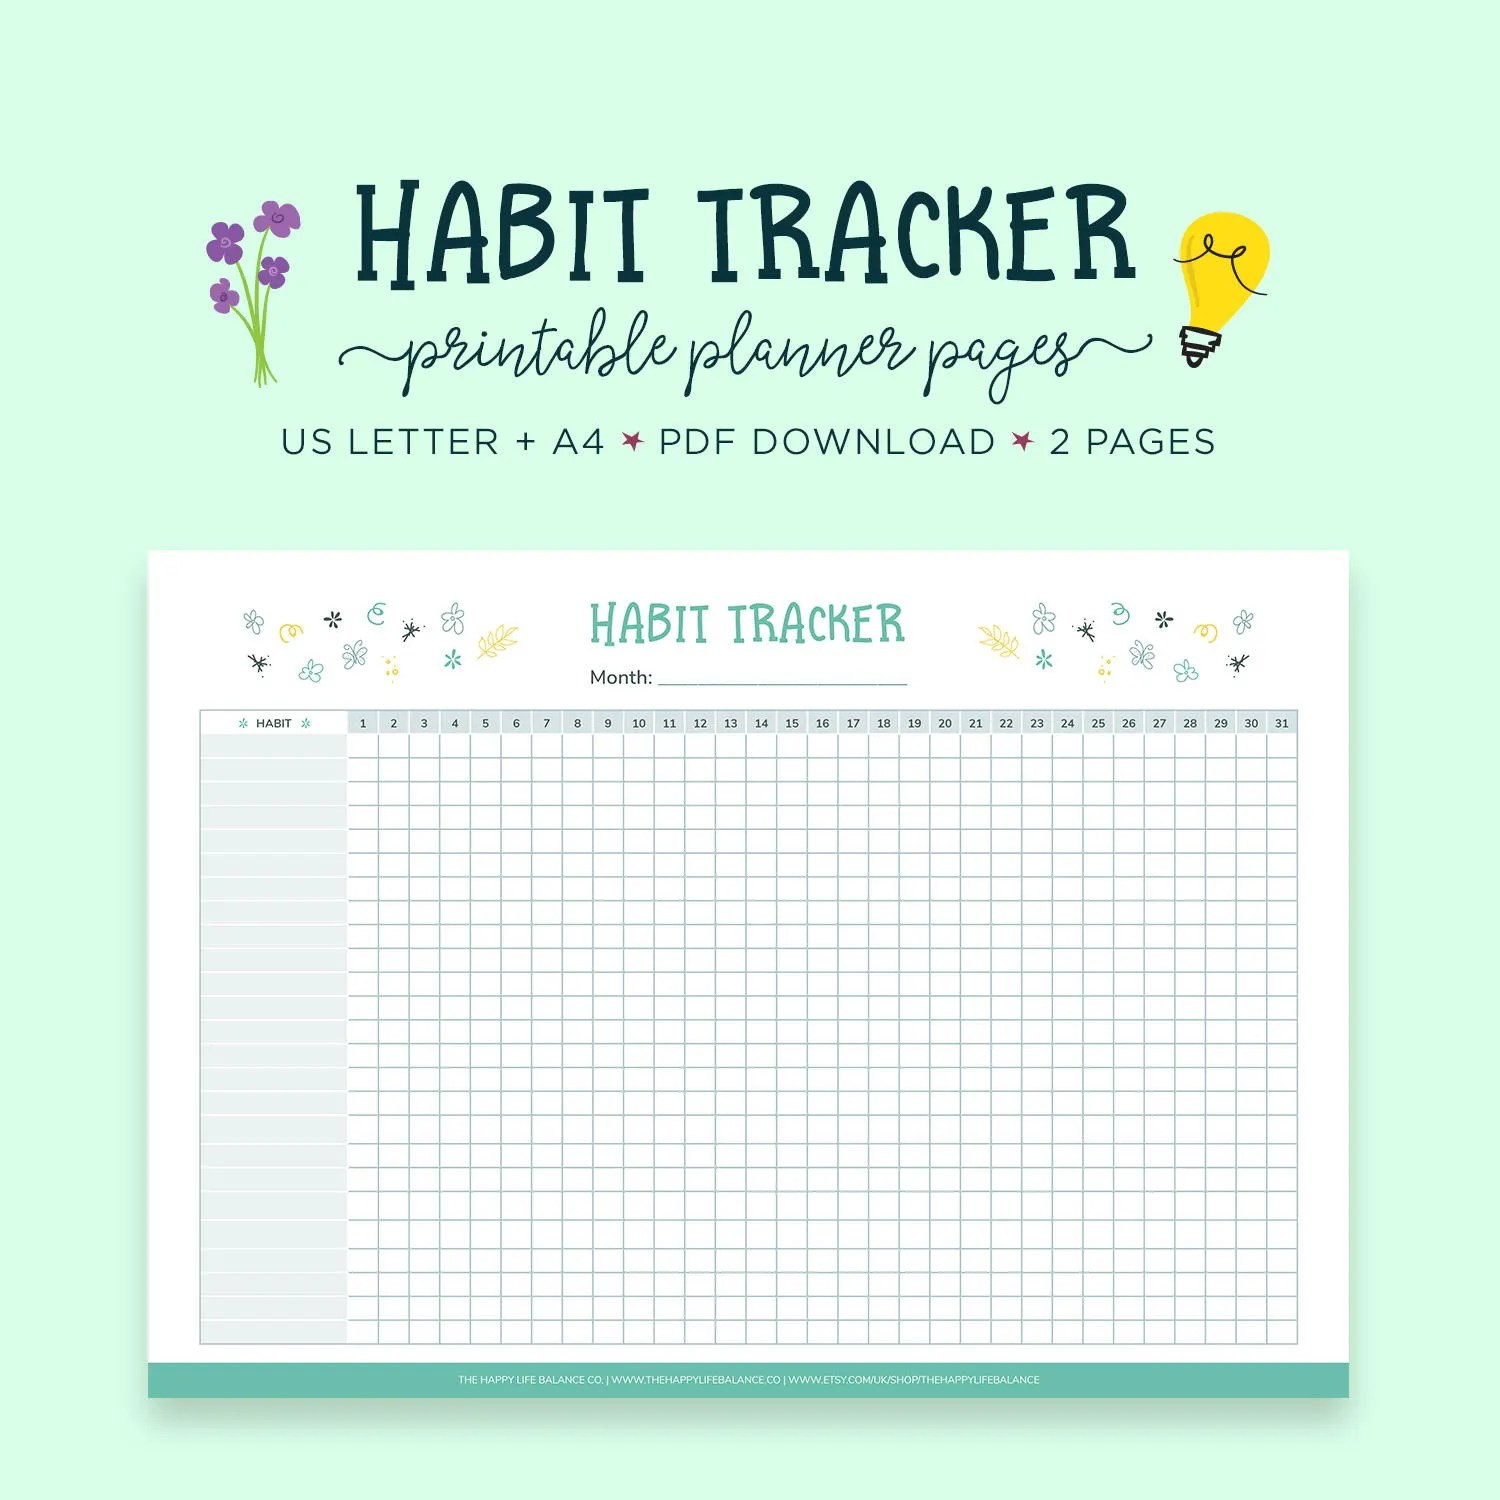 Habit Tracker Daily Habits Planner Goal Tracker Self Care